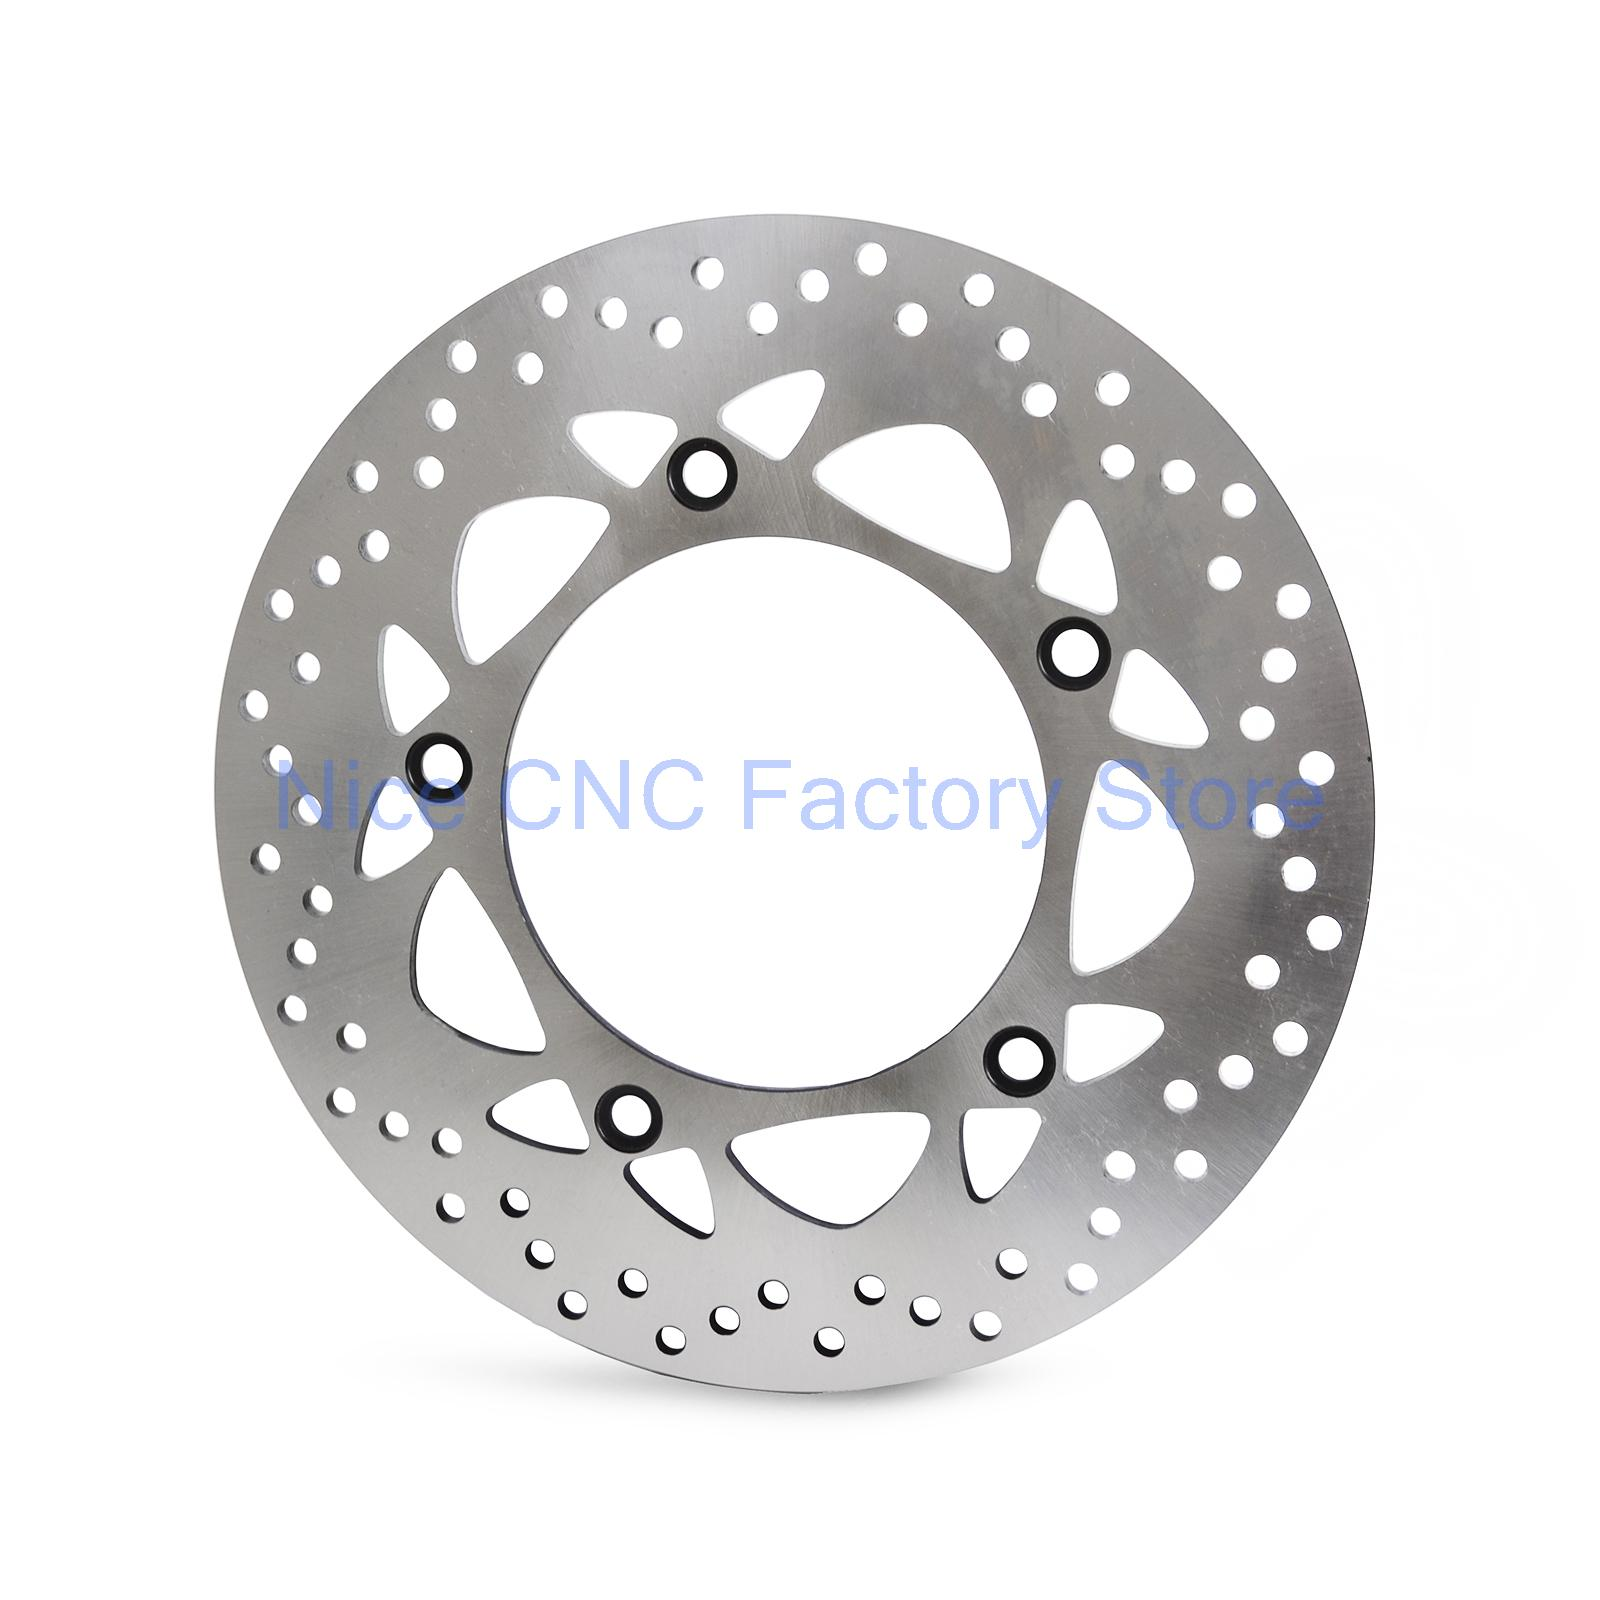 Motorcycle Rear Brake Disc Rotor For Yamaha T-Max530 Tmax530 2015 T-Max500 Tmax500 2012 -2014 XP500 XP 500 2013 2014 mantra подвесной светодиодный светильник mantra nur 5806